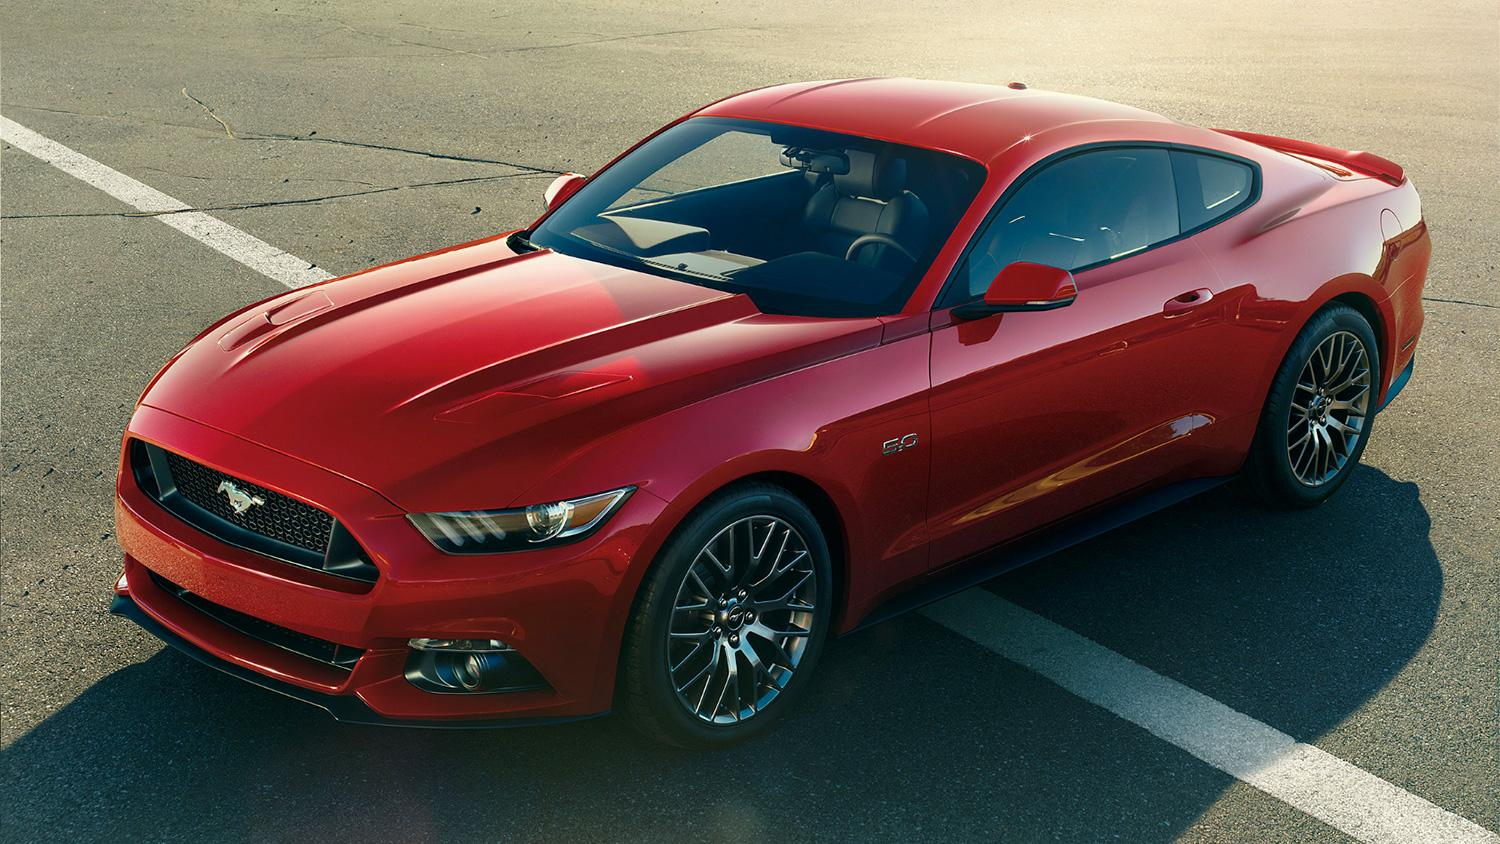 2015 ford mustang rocket launcher control is a burnout control digital trends. Black Bedroom Furniture Sets. Home Design Ideas